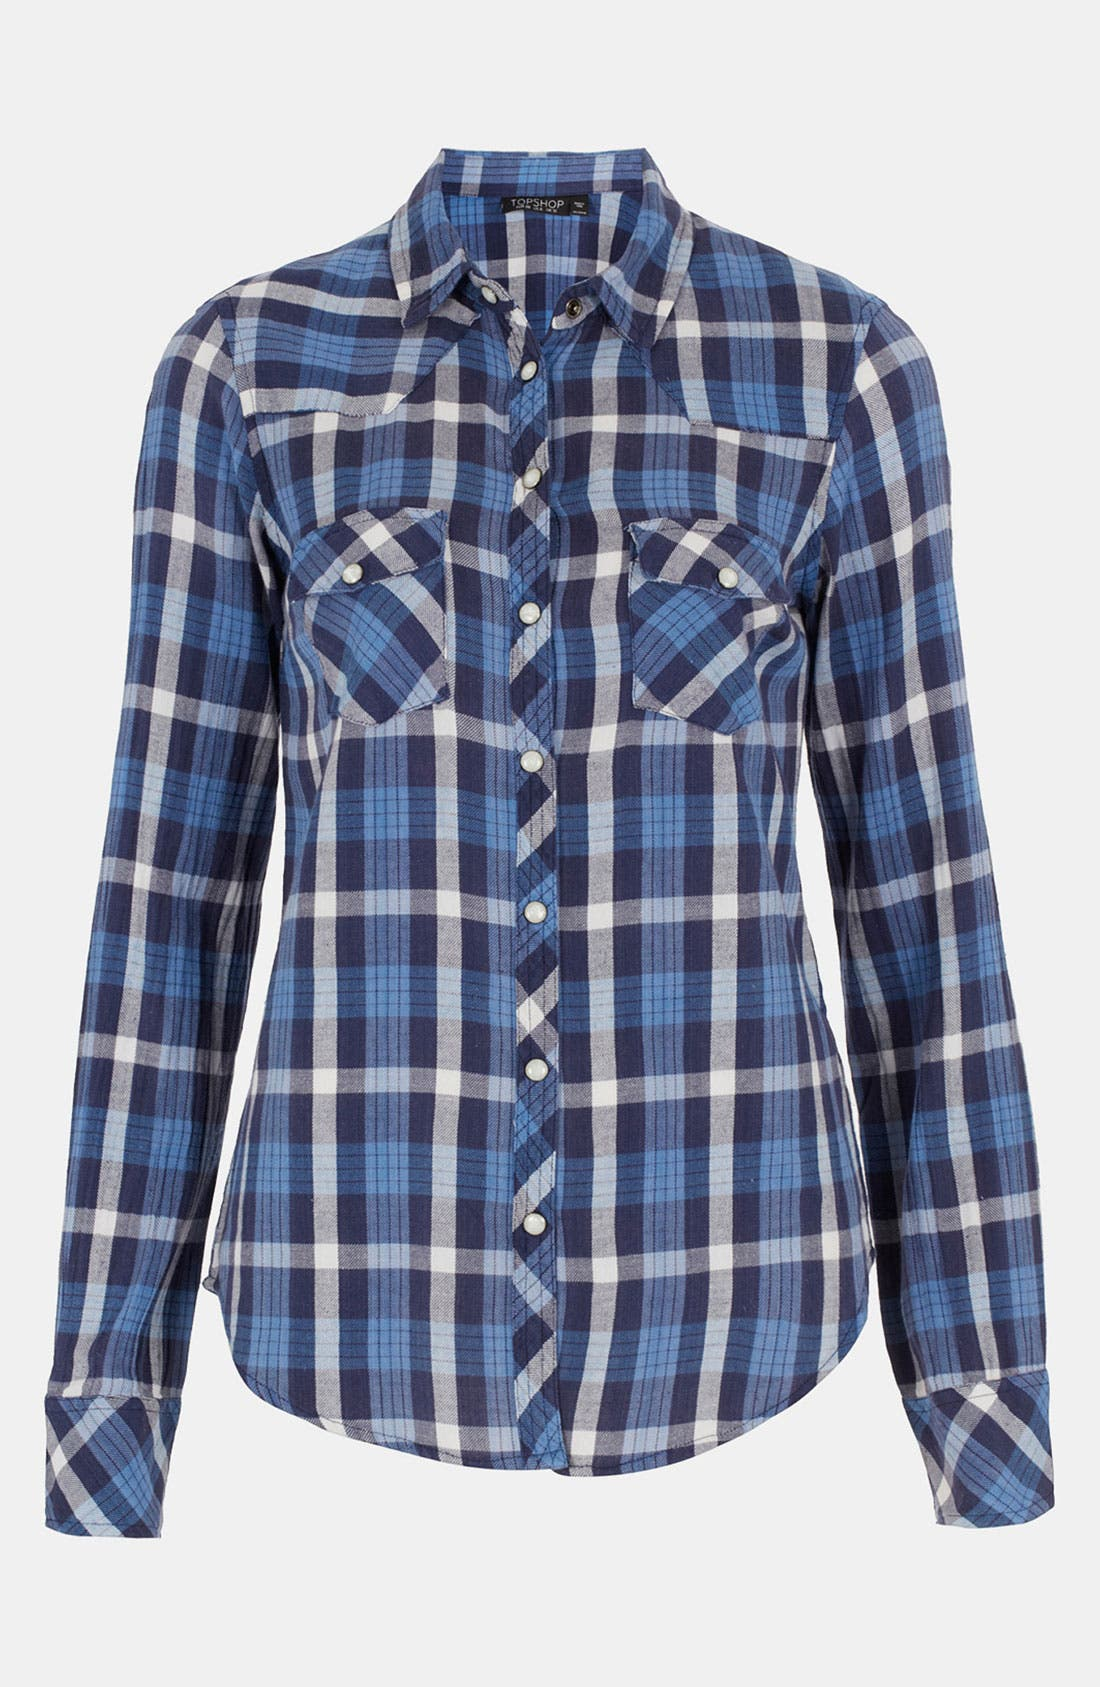 Alternate Image 1 Selected - Topshop 'Atlanta' Plaid Shirt